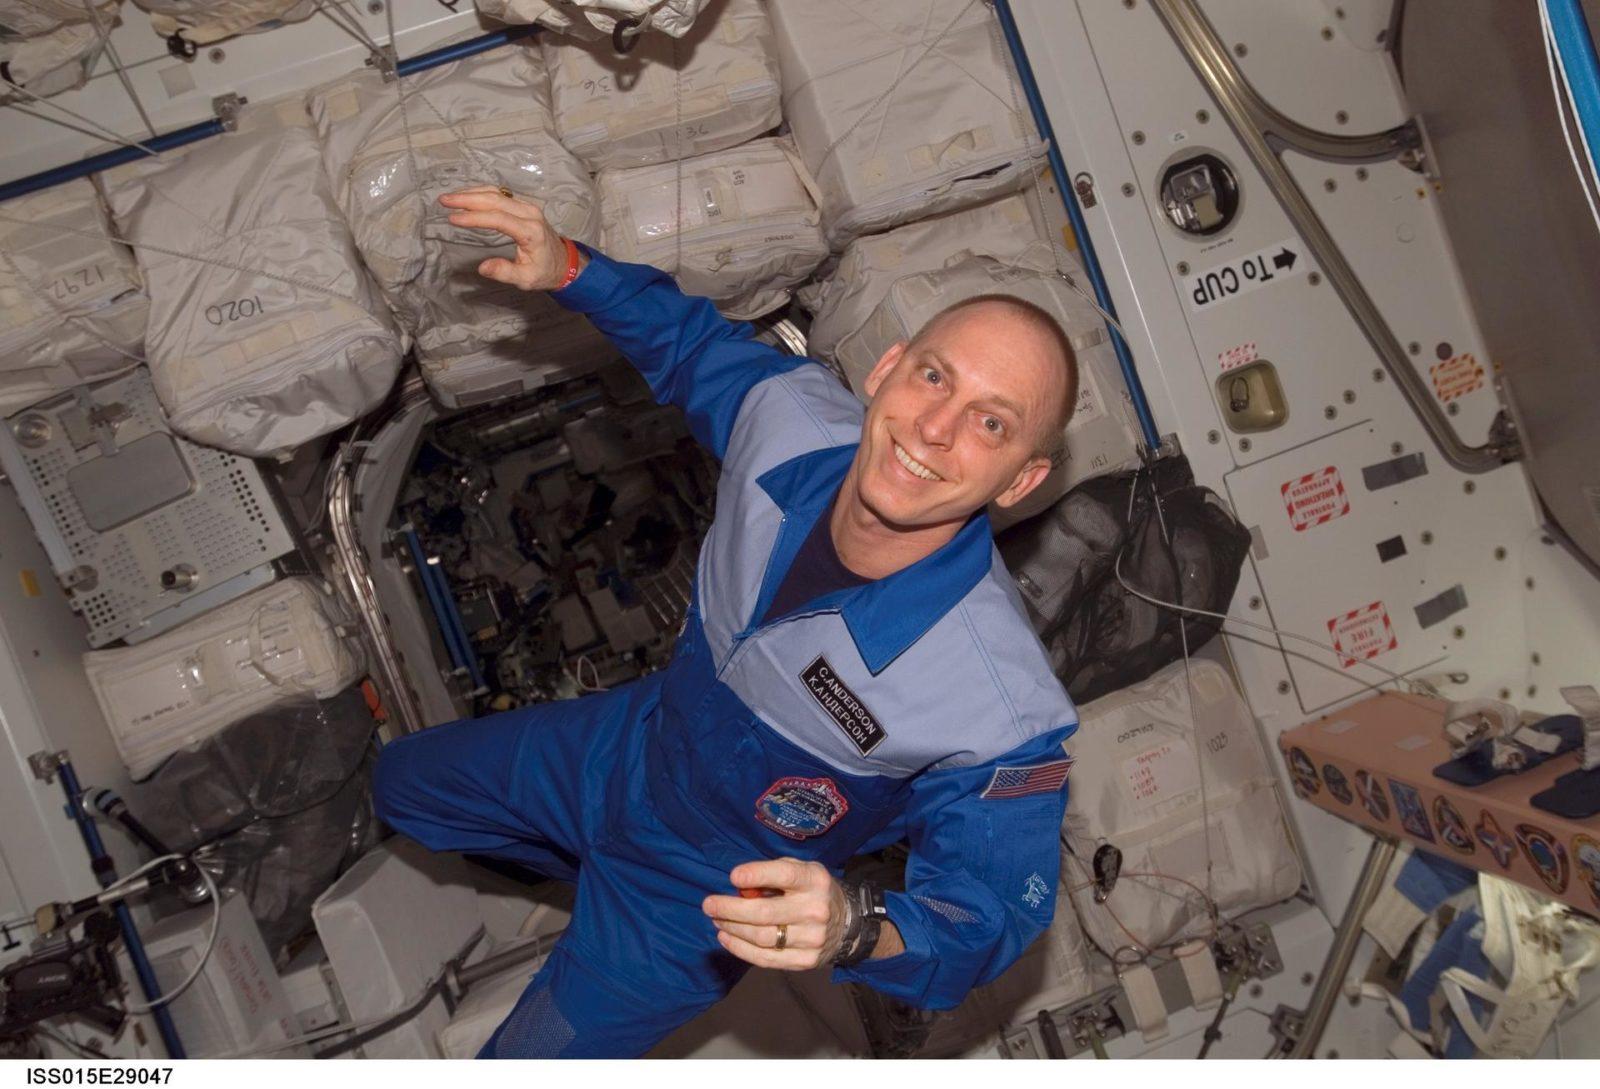 View of Anderson posing for a photo in the Node 1 during Expedition 15